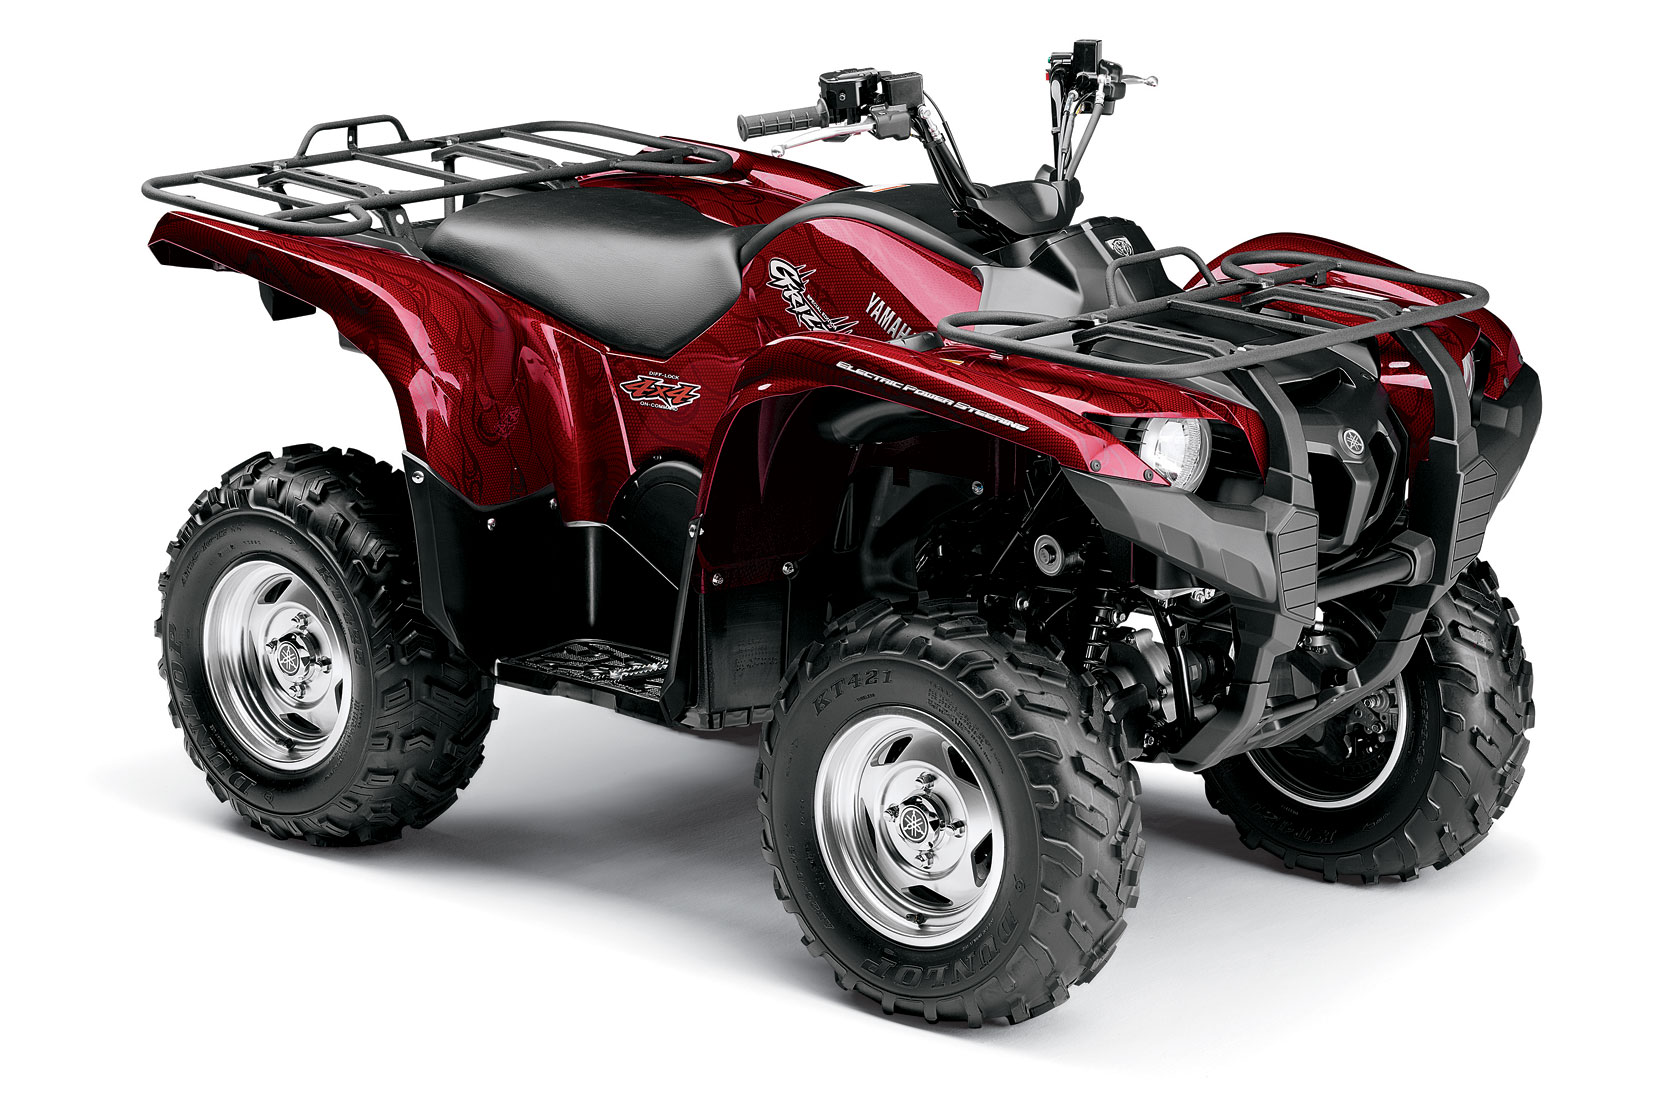 Yamaha grizzly 550 fi eps special edition specs 2008 for Yamaha grizzly 50